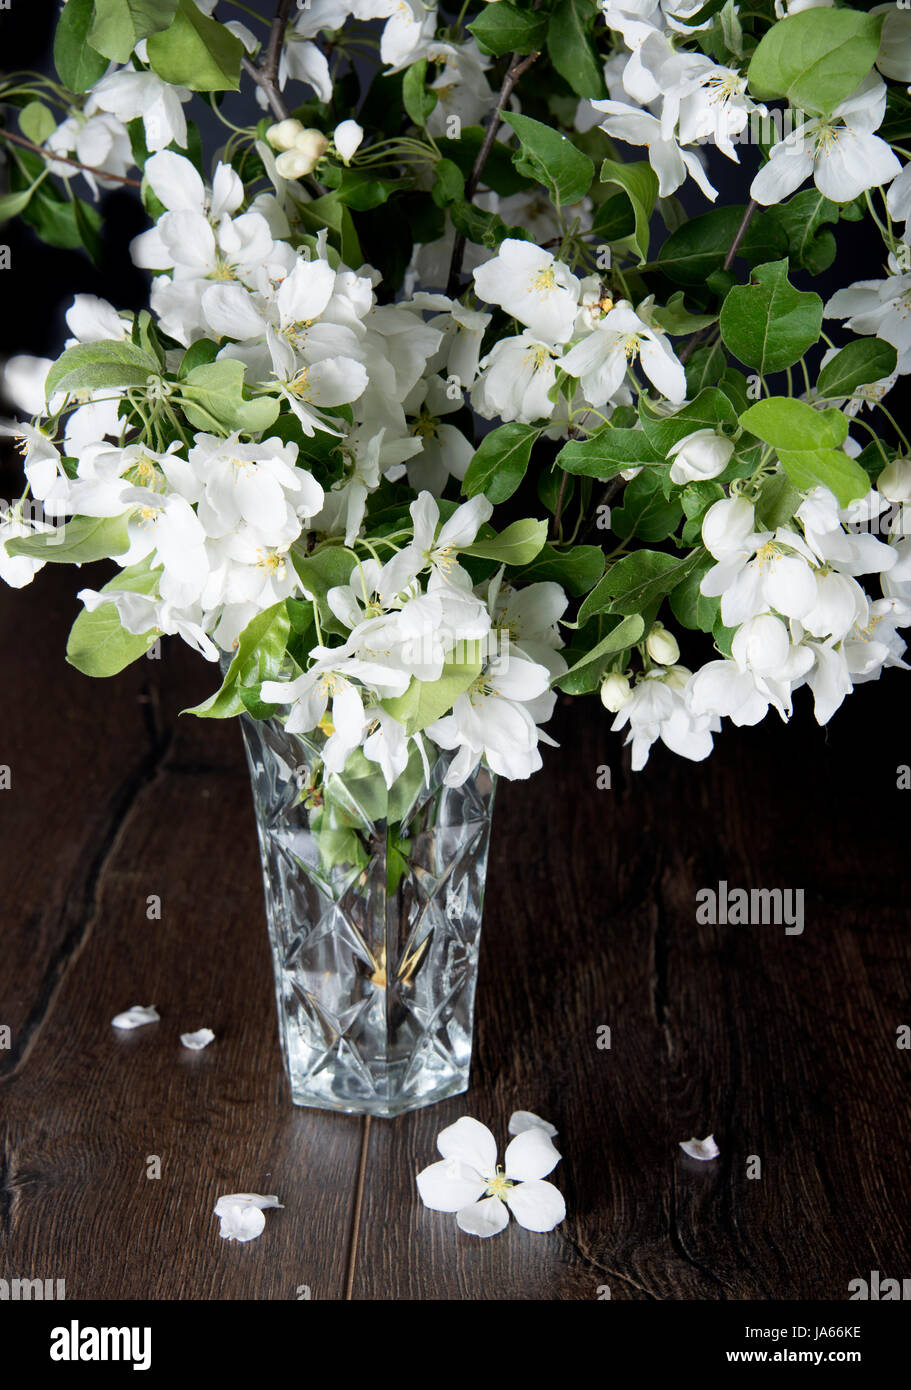 A Bouquet Of Jasmine Flowers On A Rustic Table Rustic Style Stock